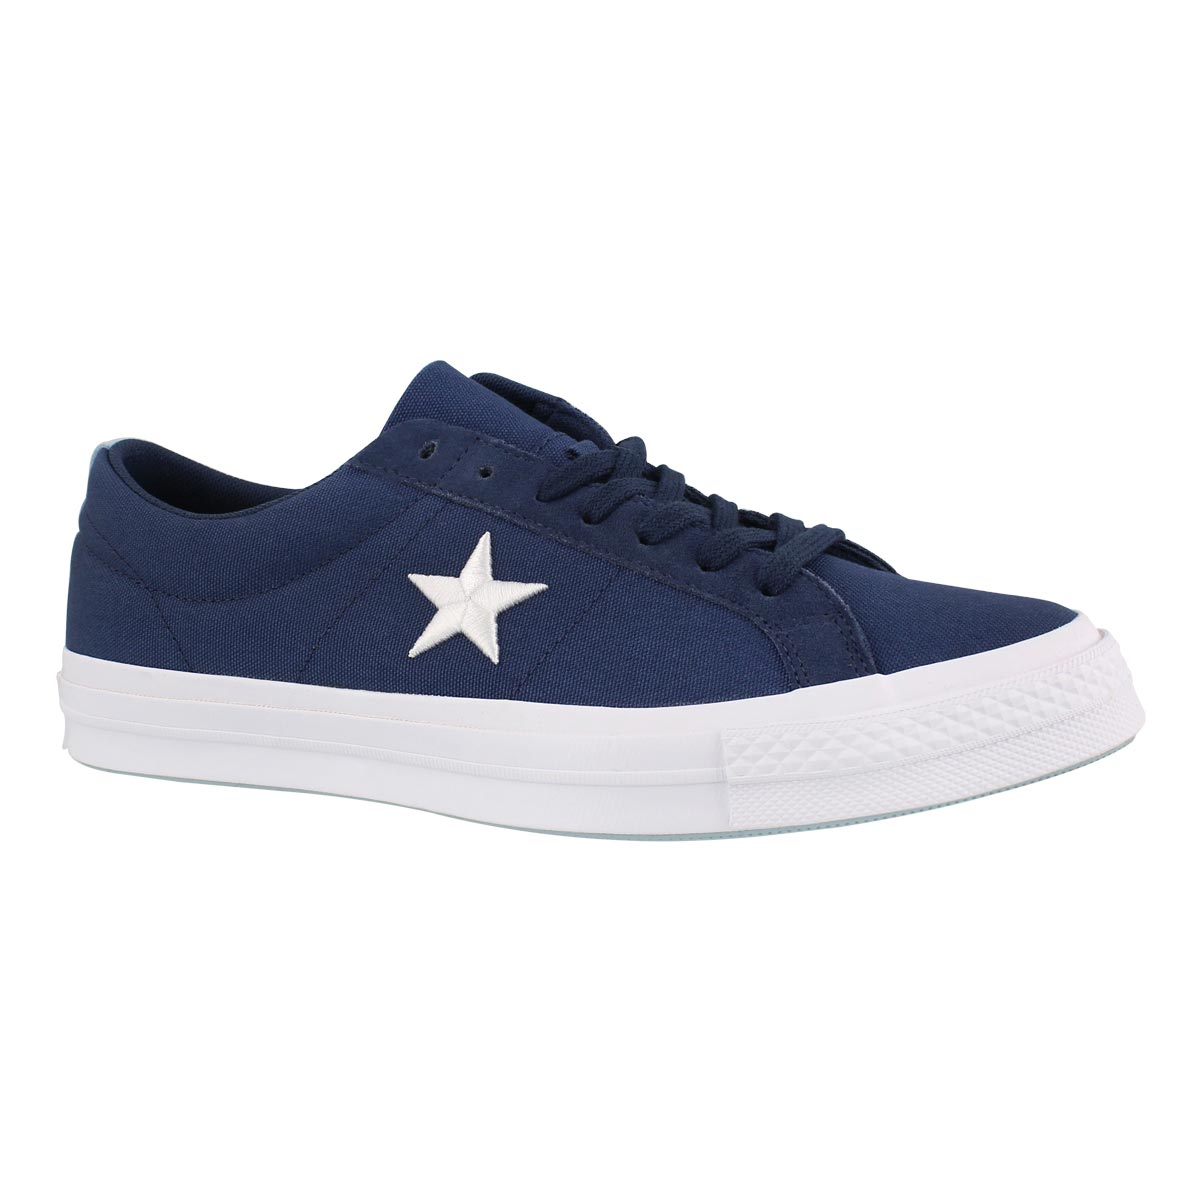 Men's ONE STAR navy/whte fashion sneakers